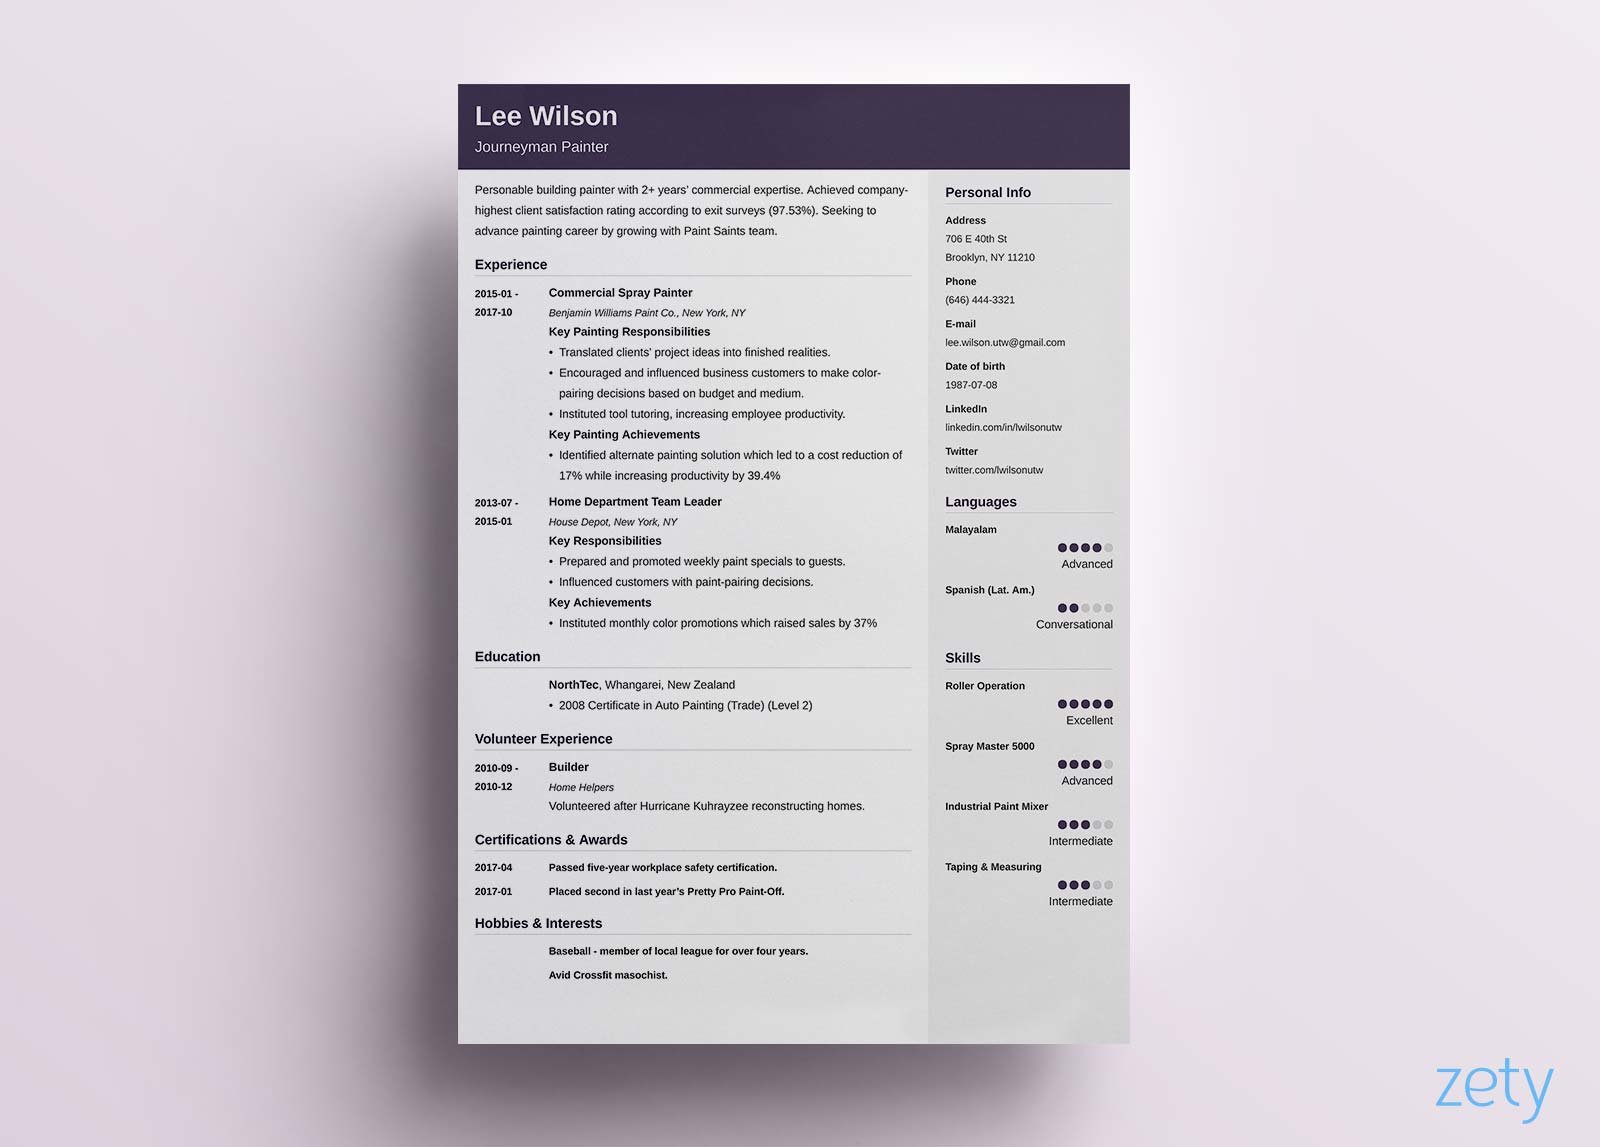 Modern resume templates 18 examples a complete guide example of modern resume design altavistaventures Image collections